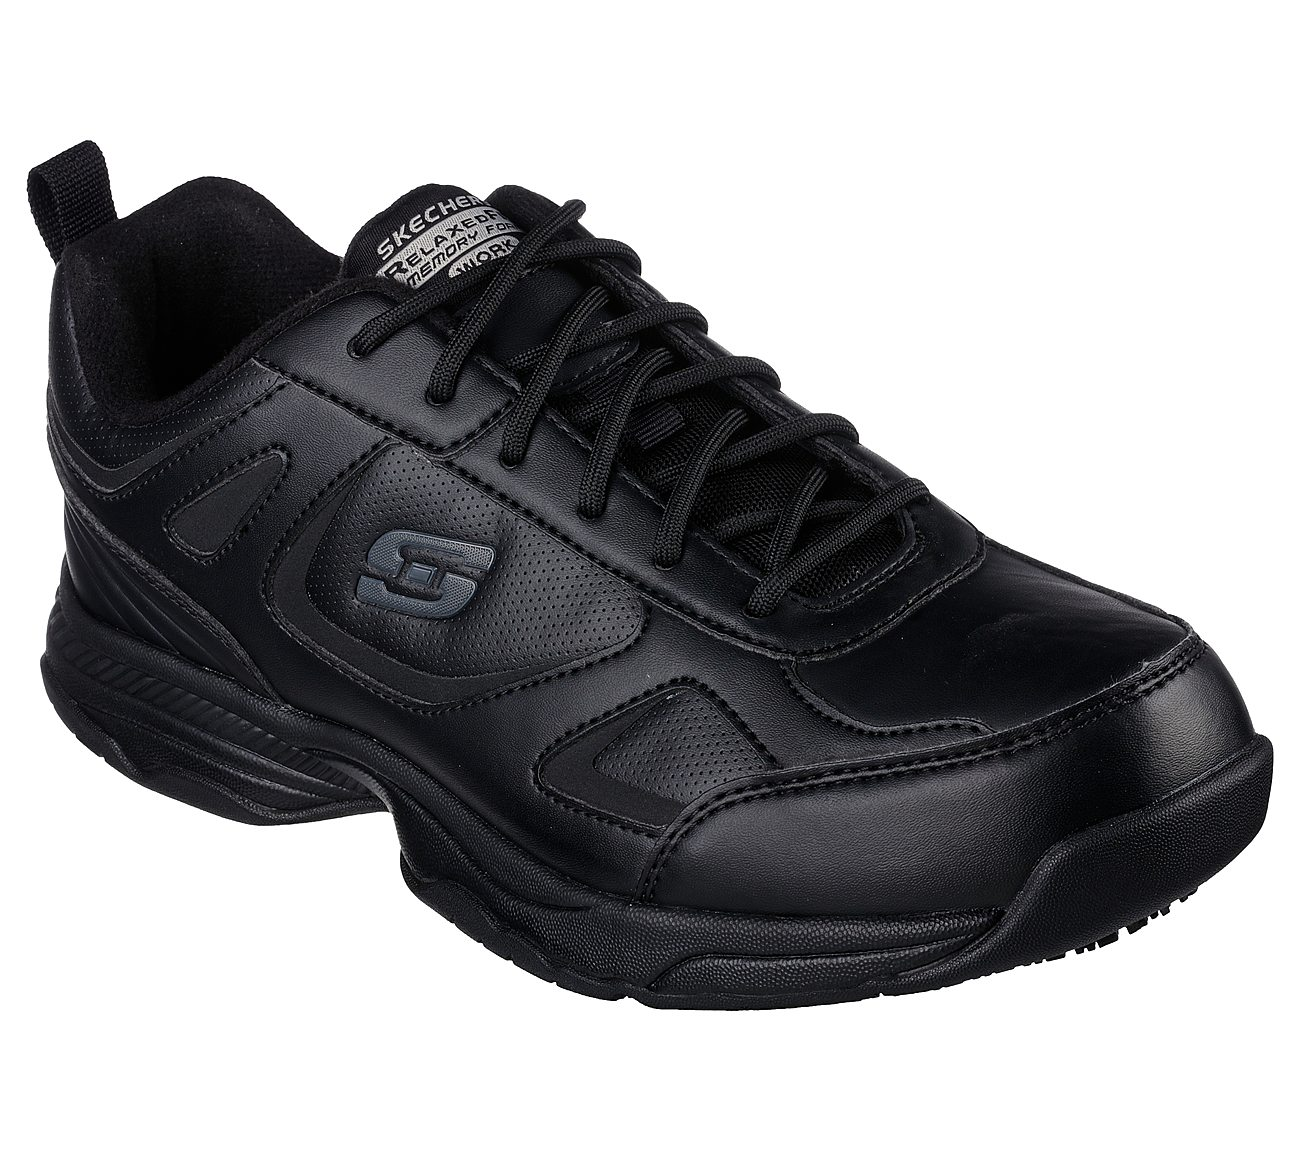 skechers sneakers for sale